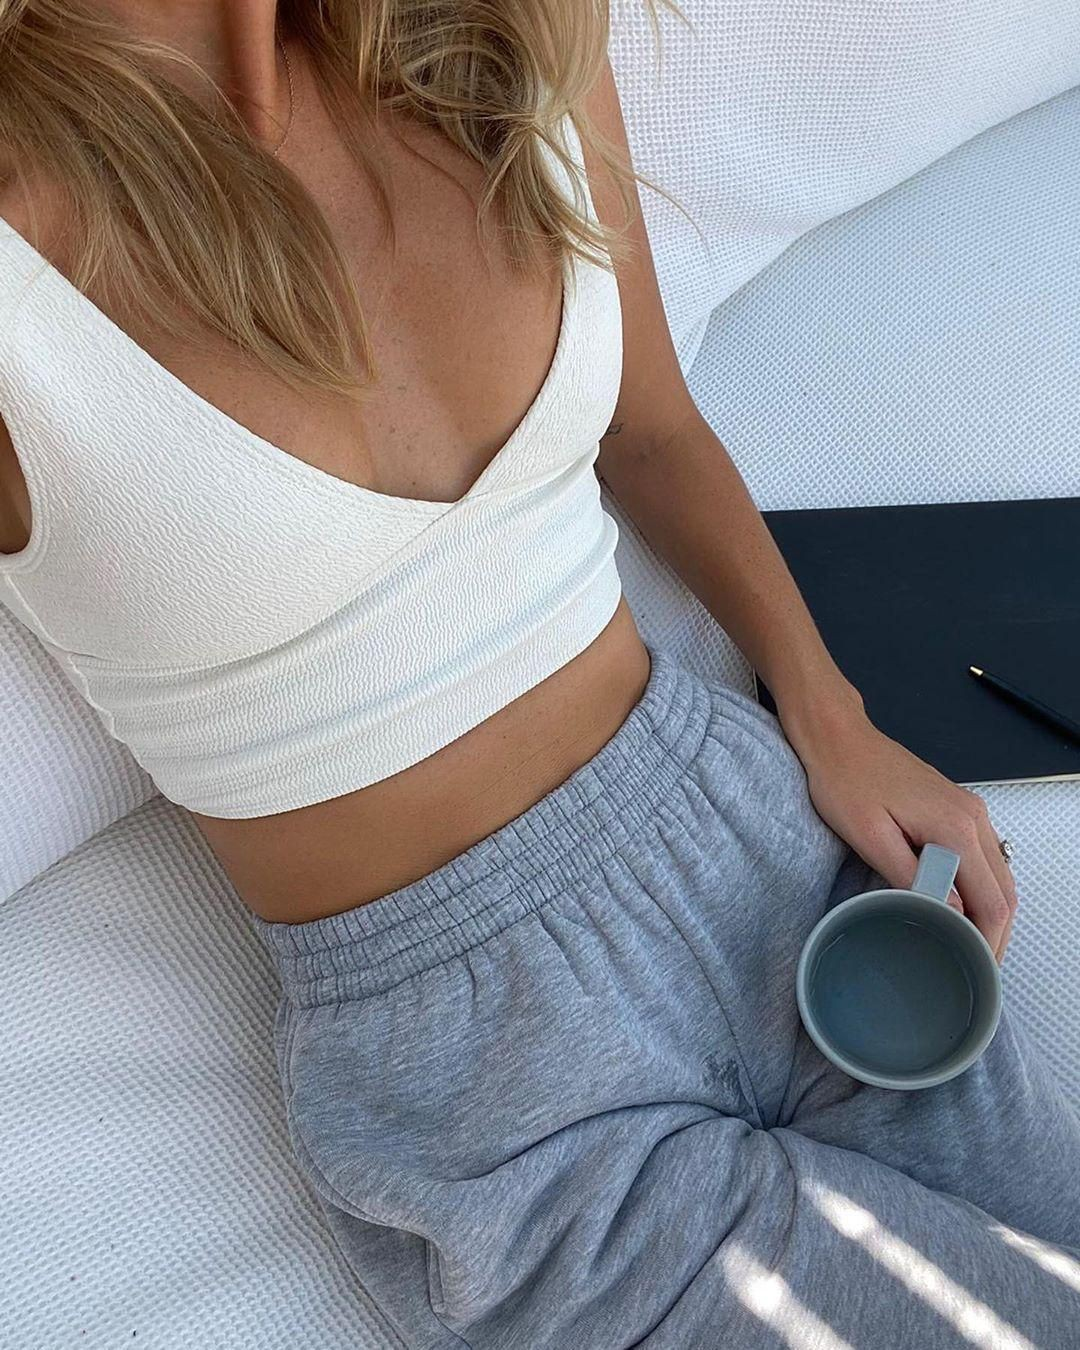 Clothing lookbook ideas with crop top, skirt